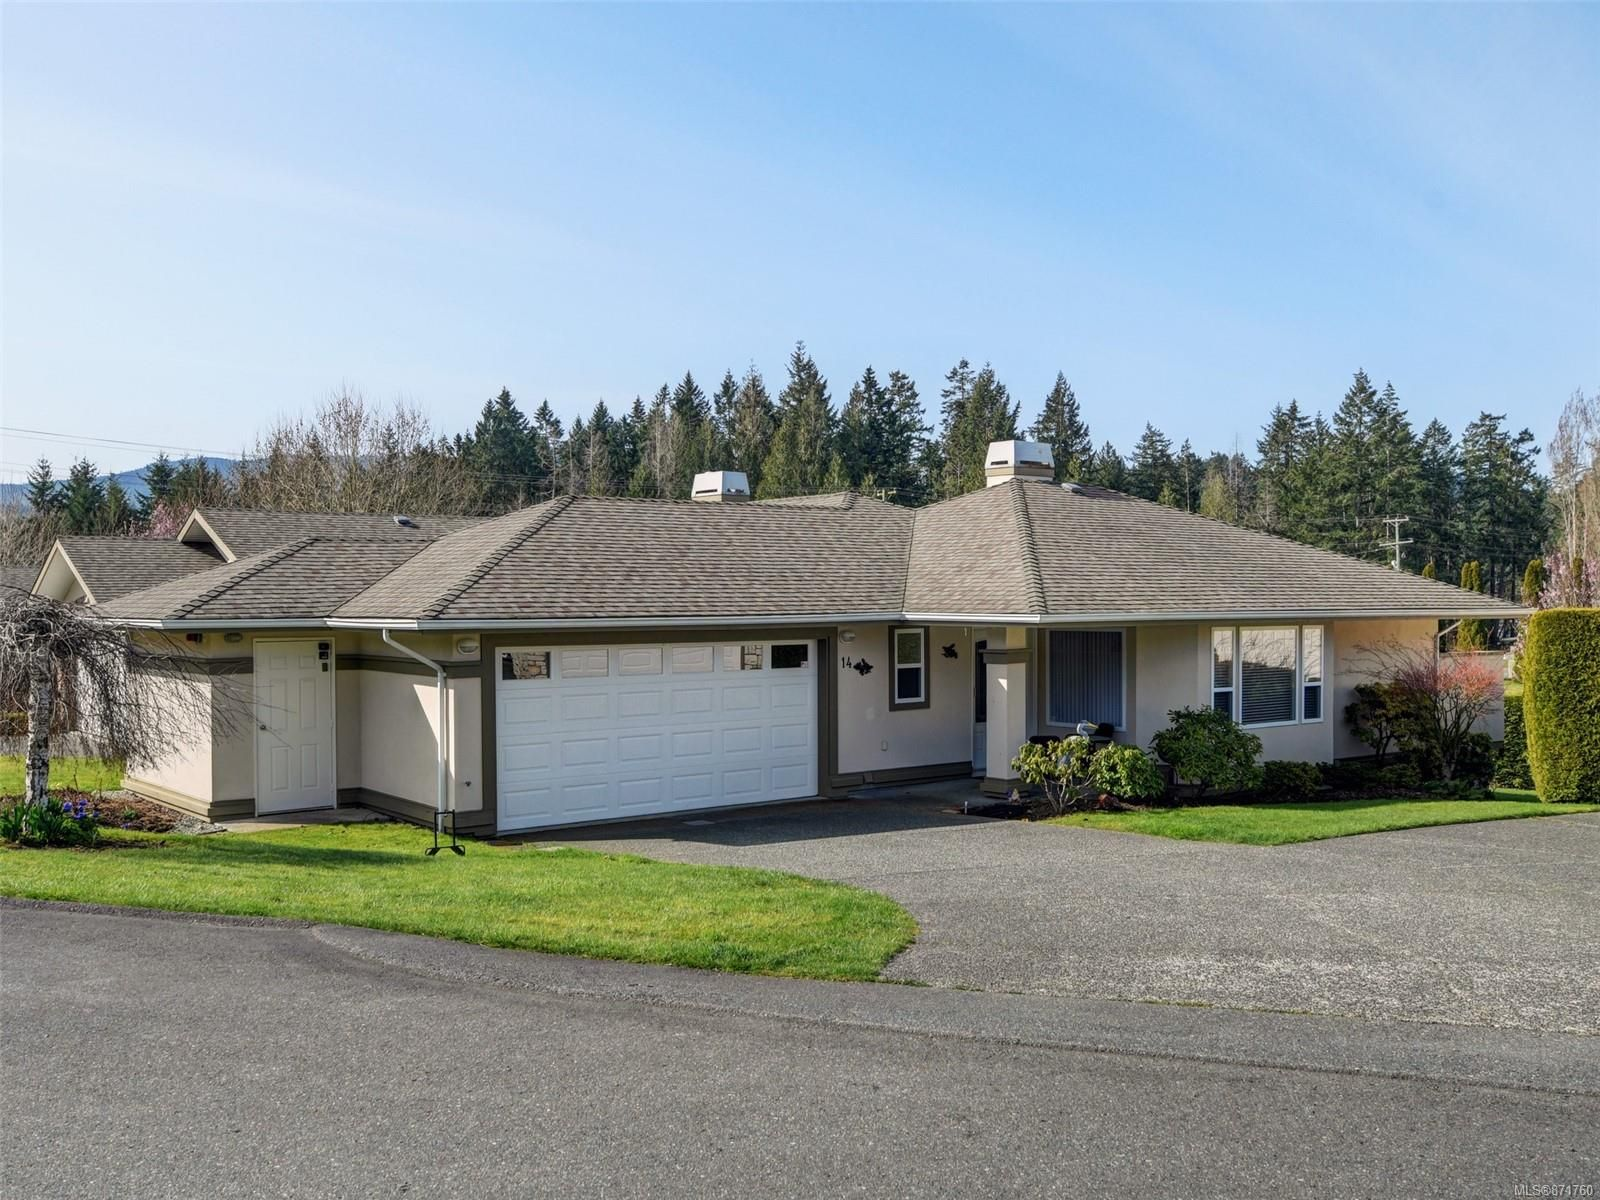 Main Photo: 14 920 Brulette Pl in : ML Mill Bay Row/Townhouse for sale (Malahat & Area)  : MLS®# 871760